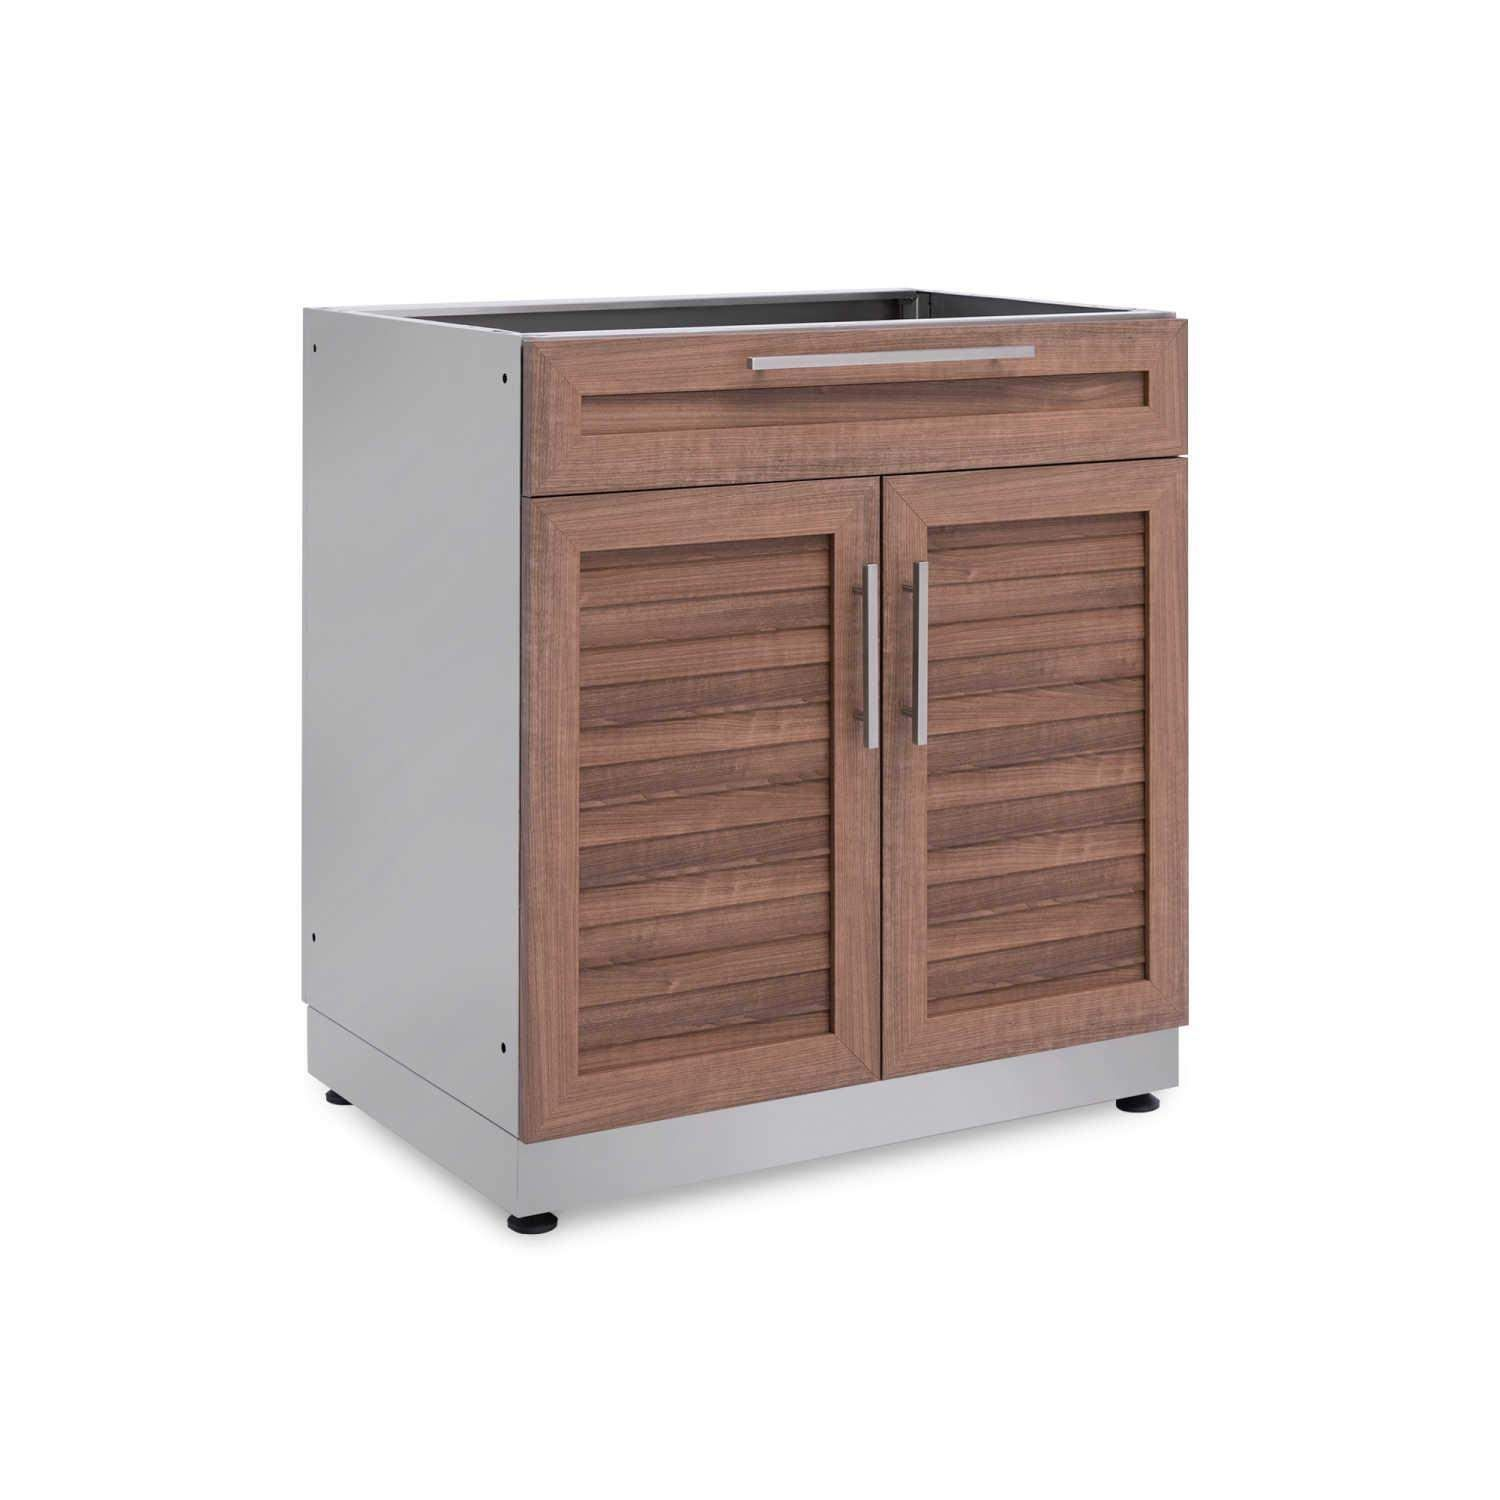 Newage Products Newage Outdoor Kitchen Grove Stainless Steel 32 Bar Cabinet 65603 Outdoor Kitchen Cabinets Outdoor Kitchen Bars Outdoor Kitchen Design